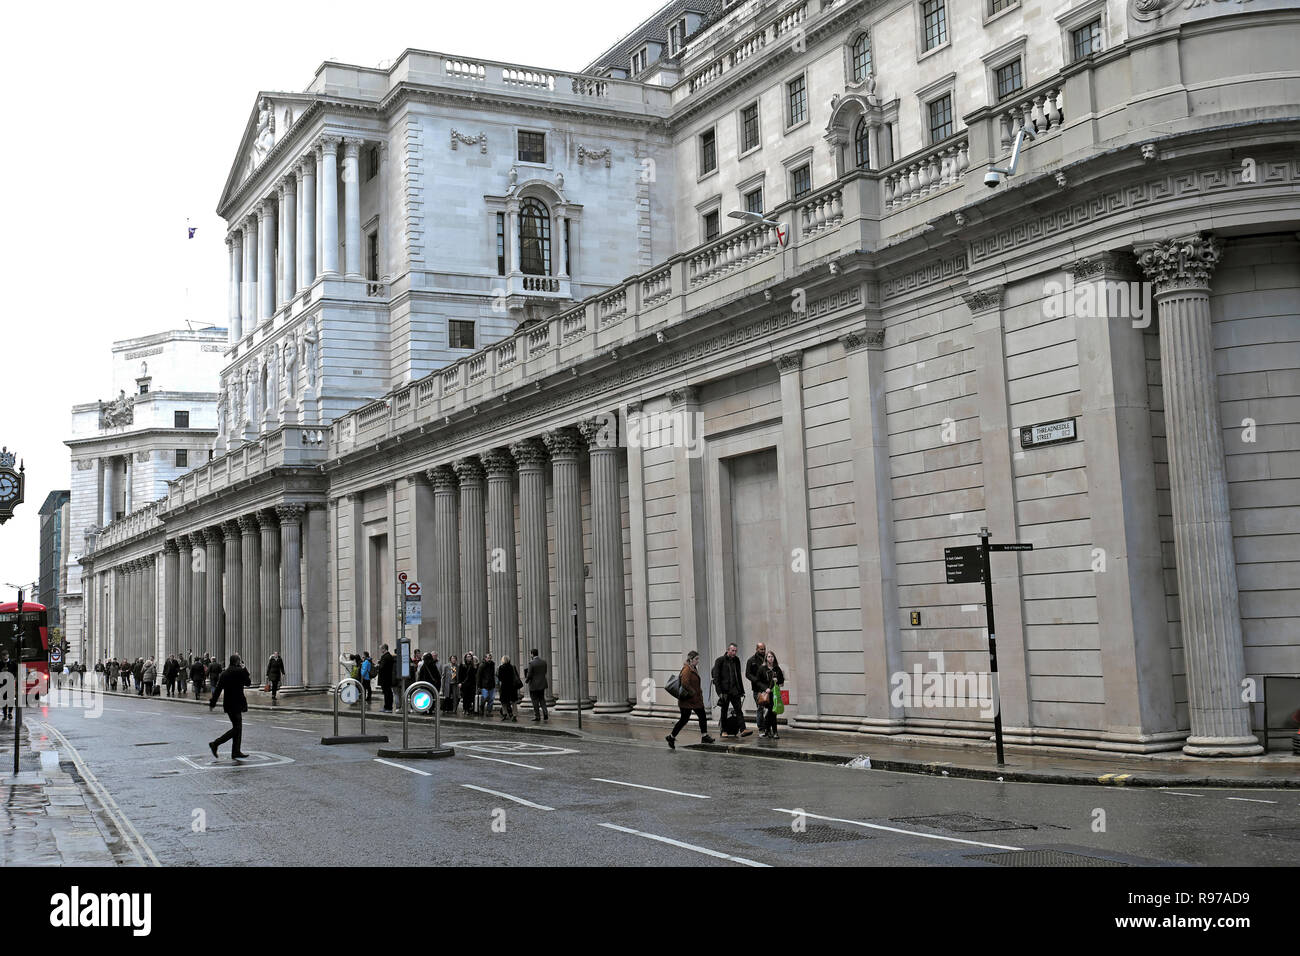 Bank of England on Threadneedle Street  in the City of London and street scene people walking in winter England UK  KATHY DEWITT Stock Photo